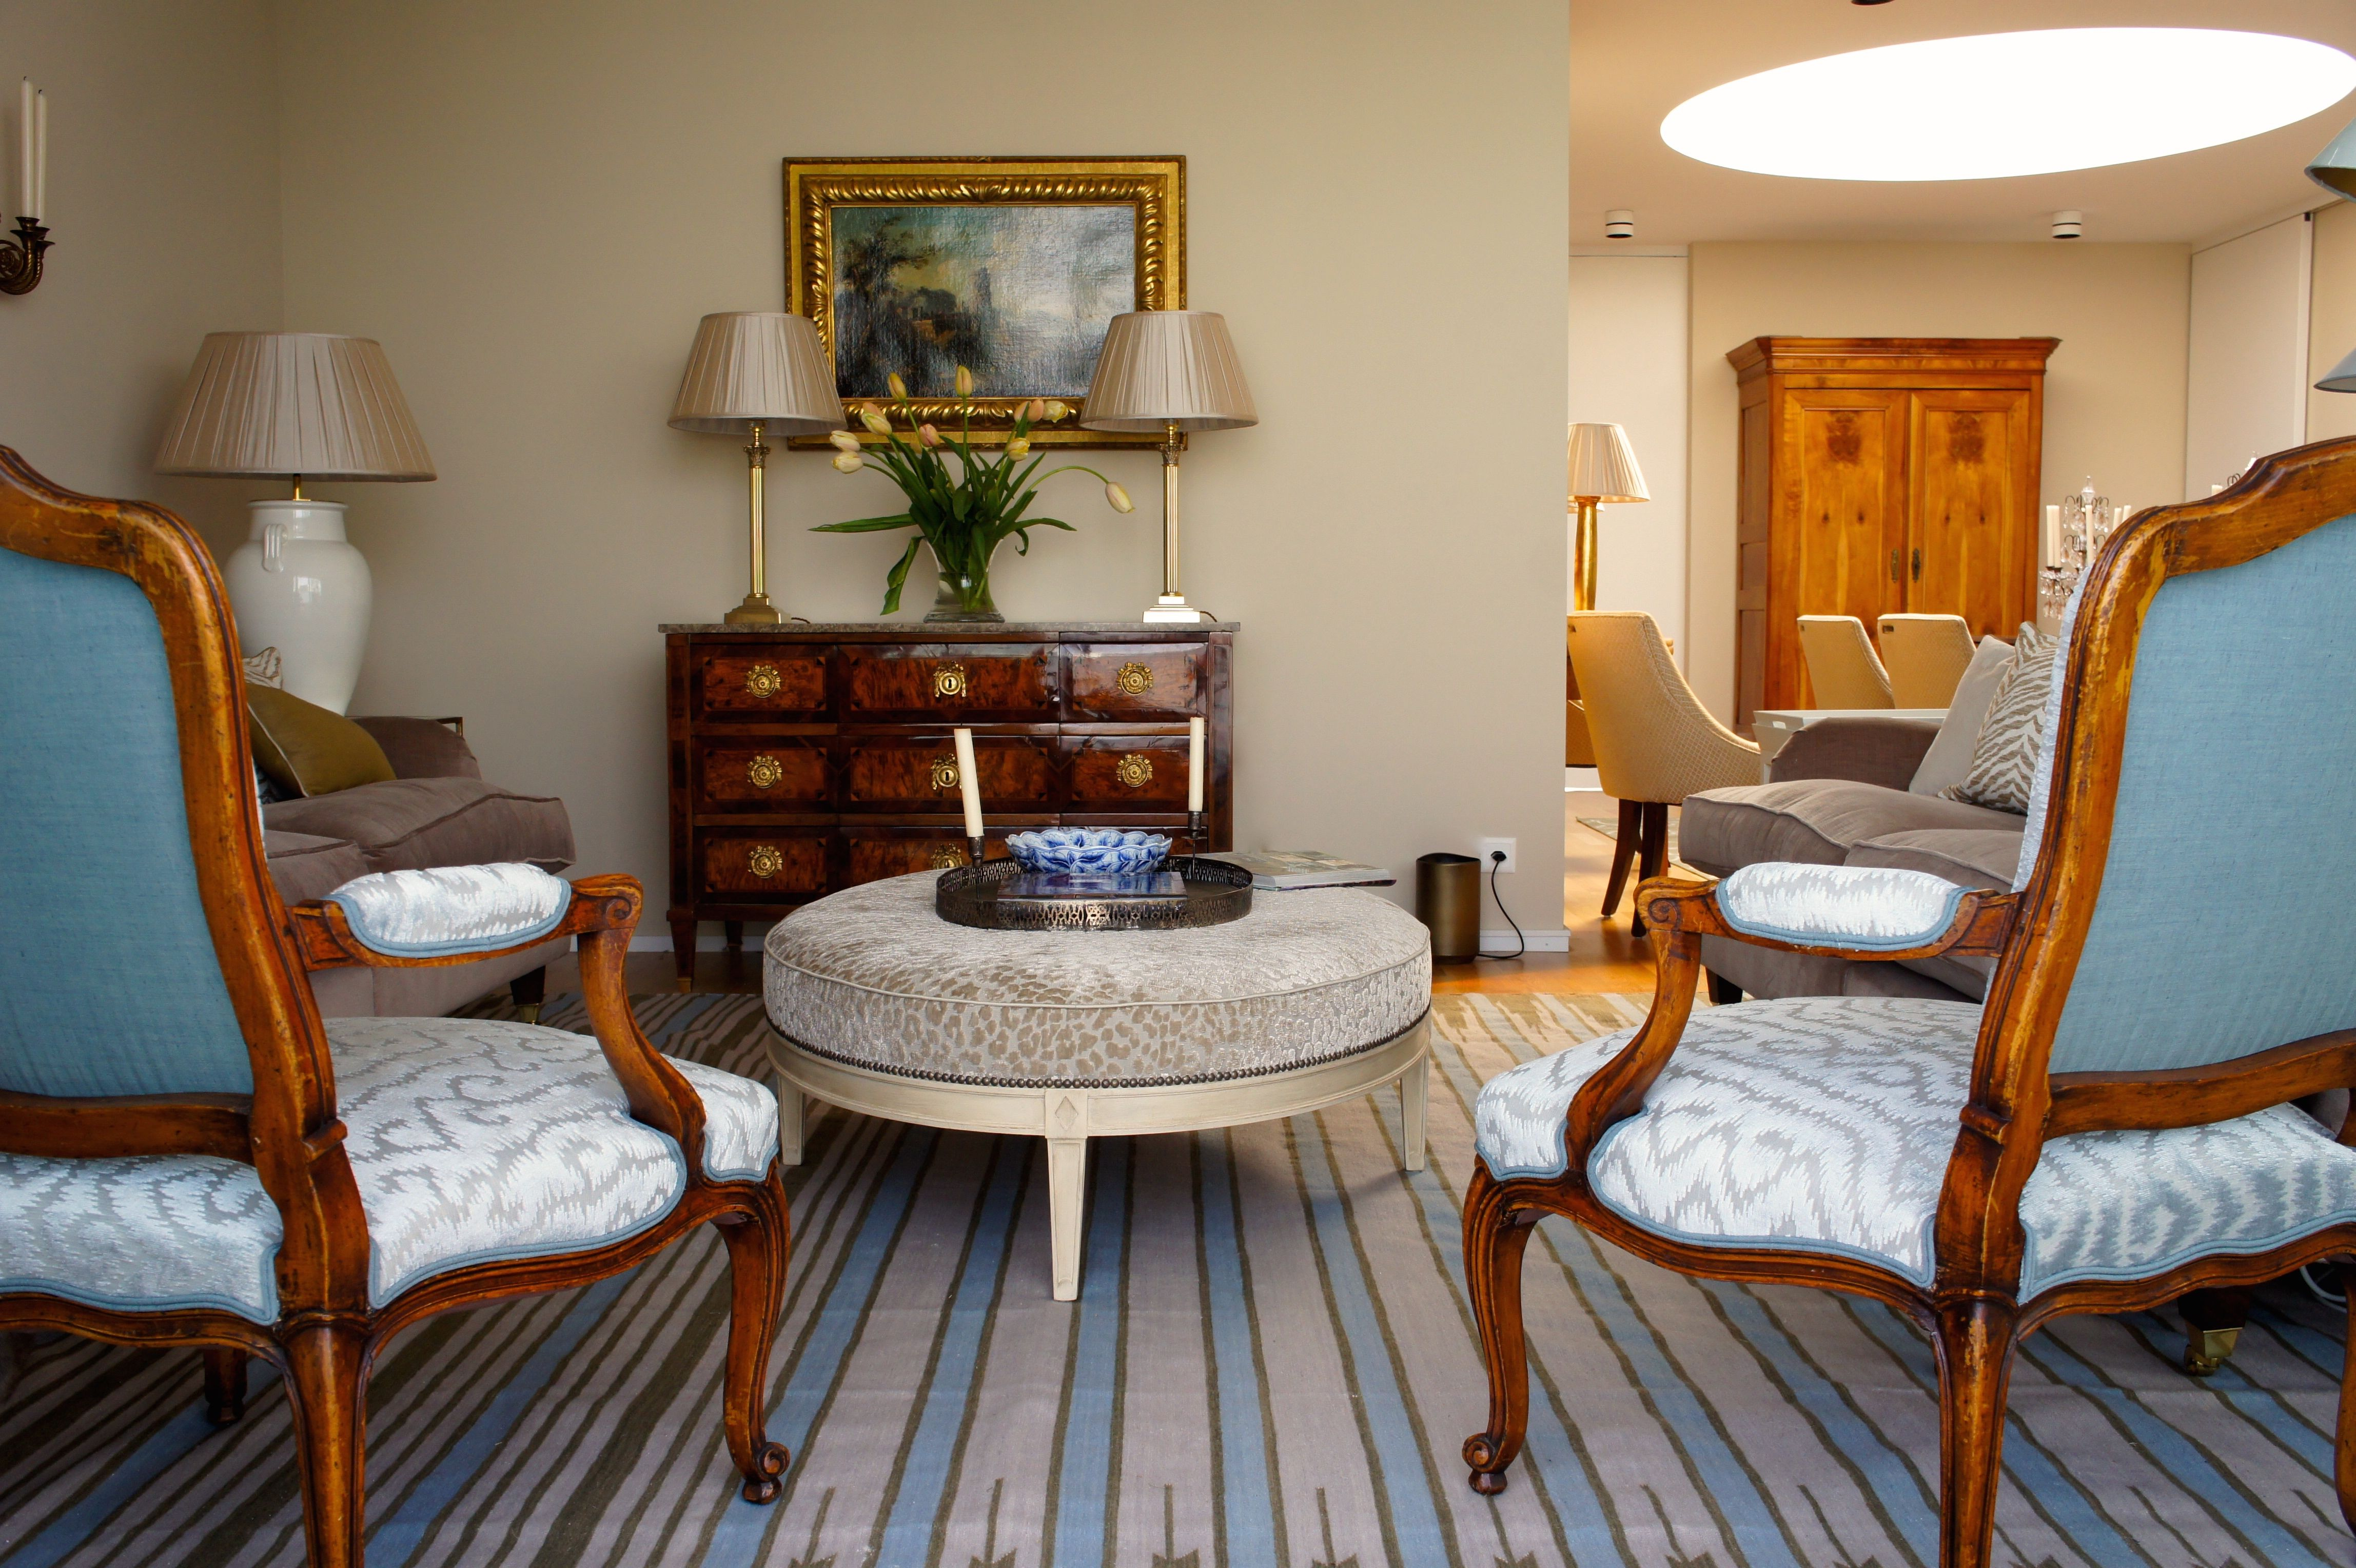 Room of the Day ~ dhurrie stripes combine with pale blue ...